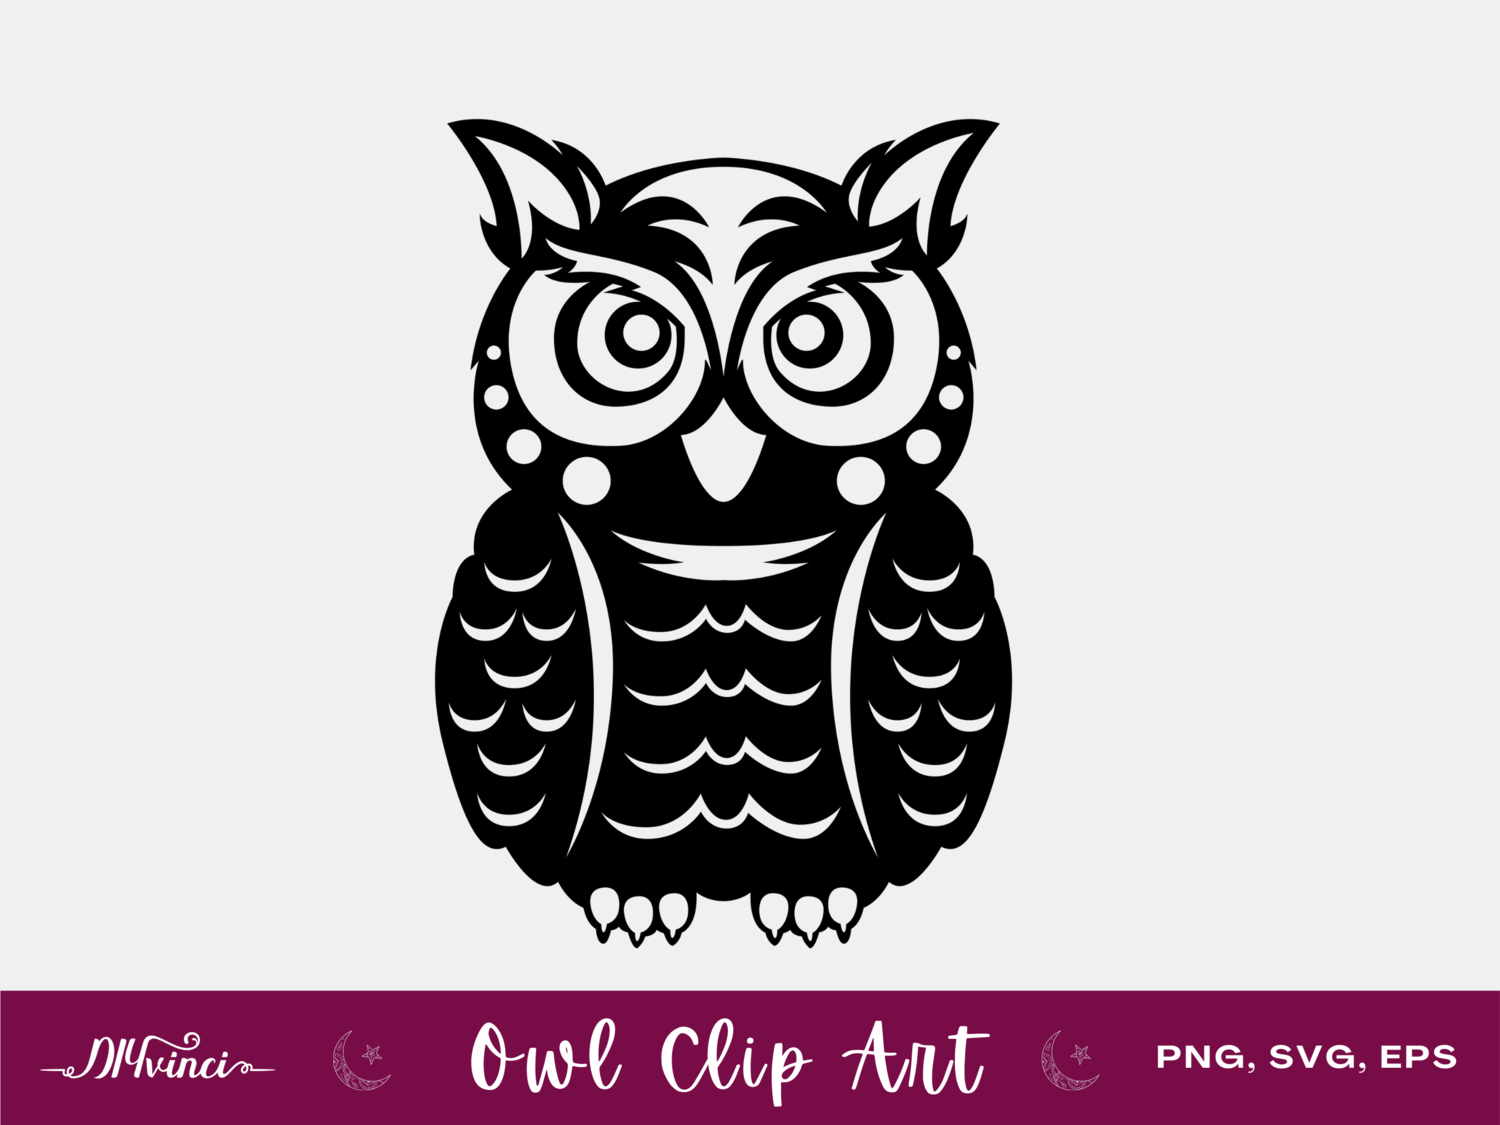 Owl Clip Art - PNG, SVG, EPS - Personal & Commercial Use